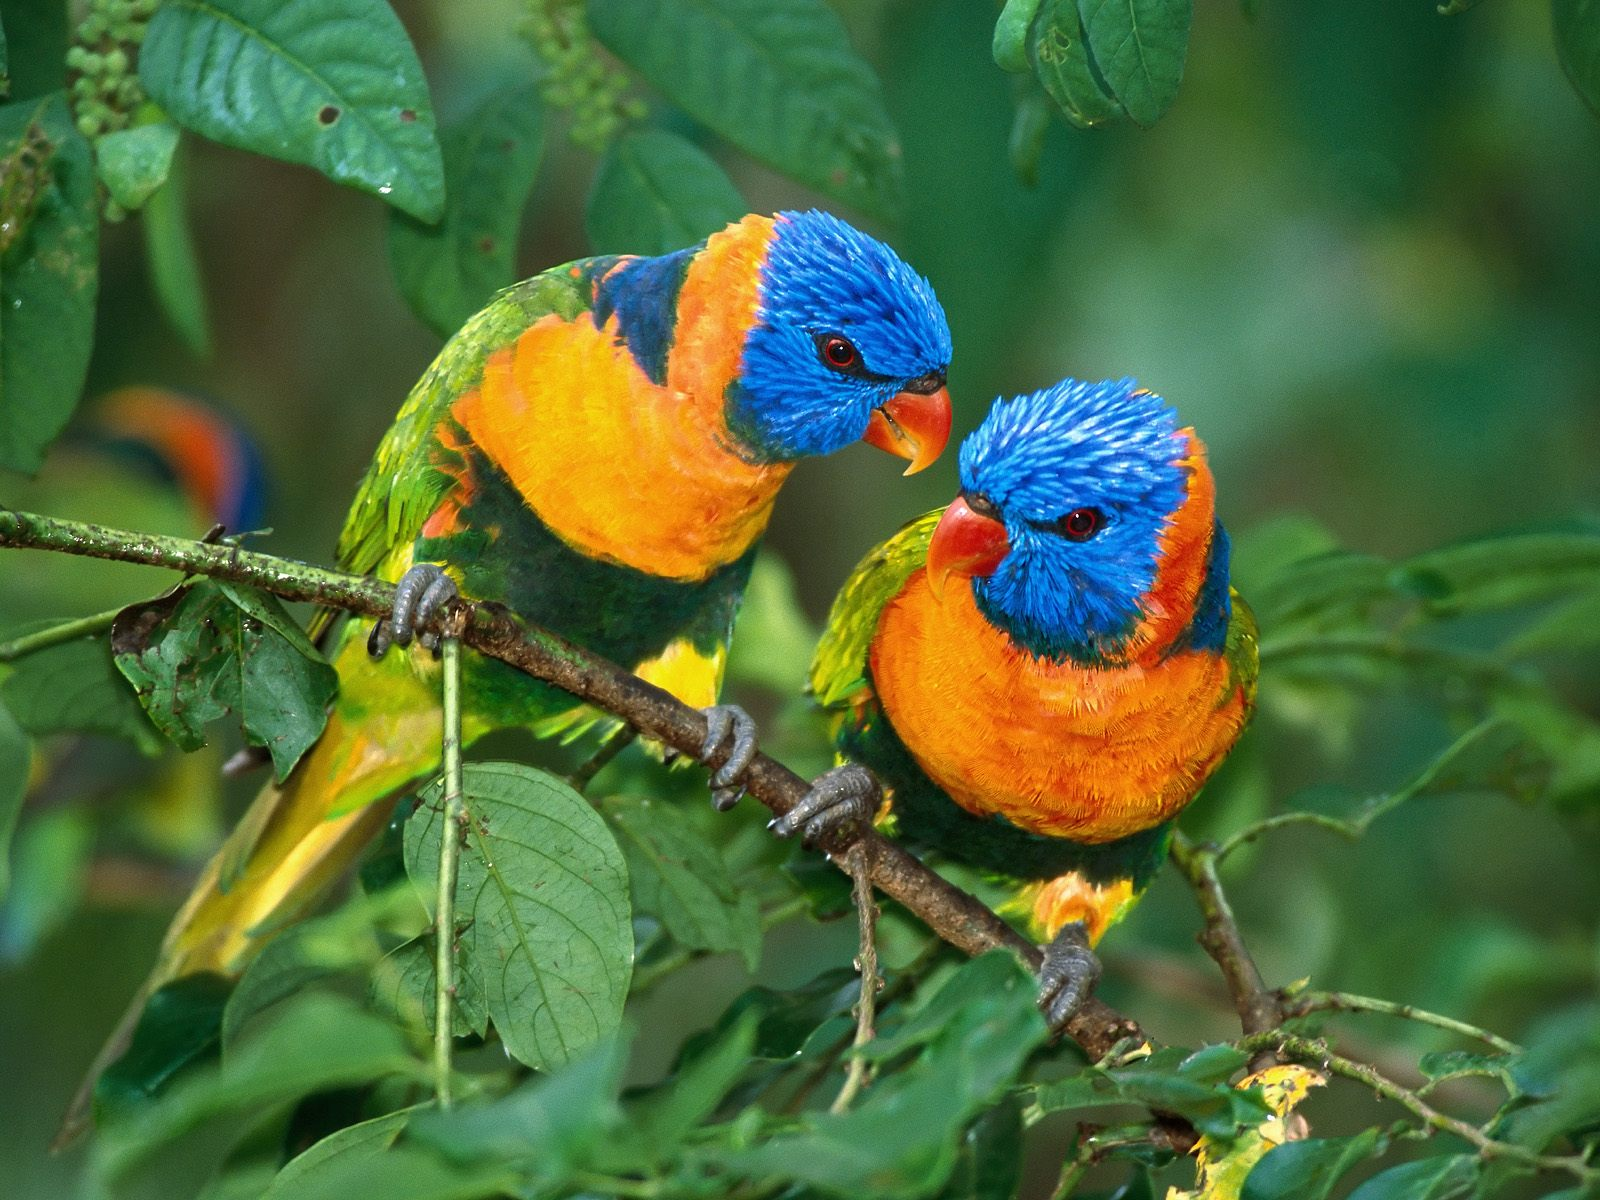 bird wallpaper love birds wallpaper love birds wallpapers nature birds 1600x1200